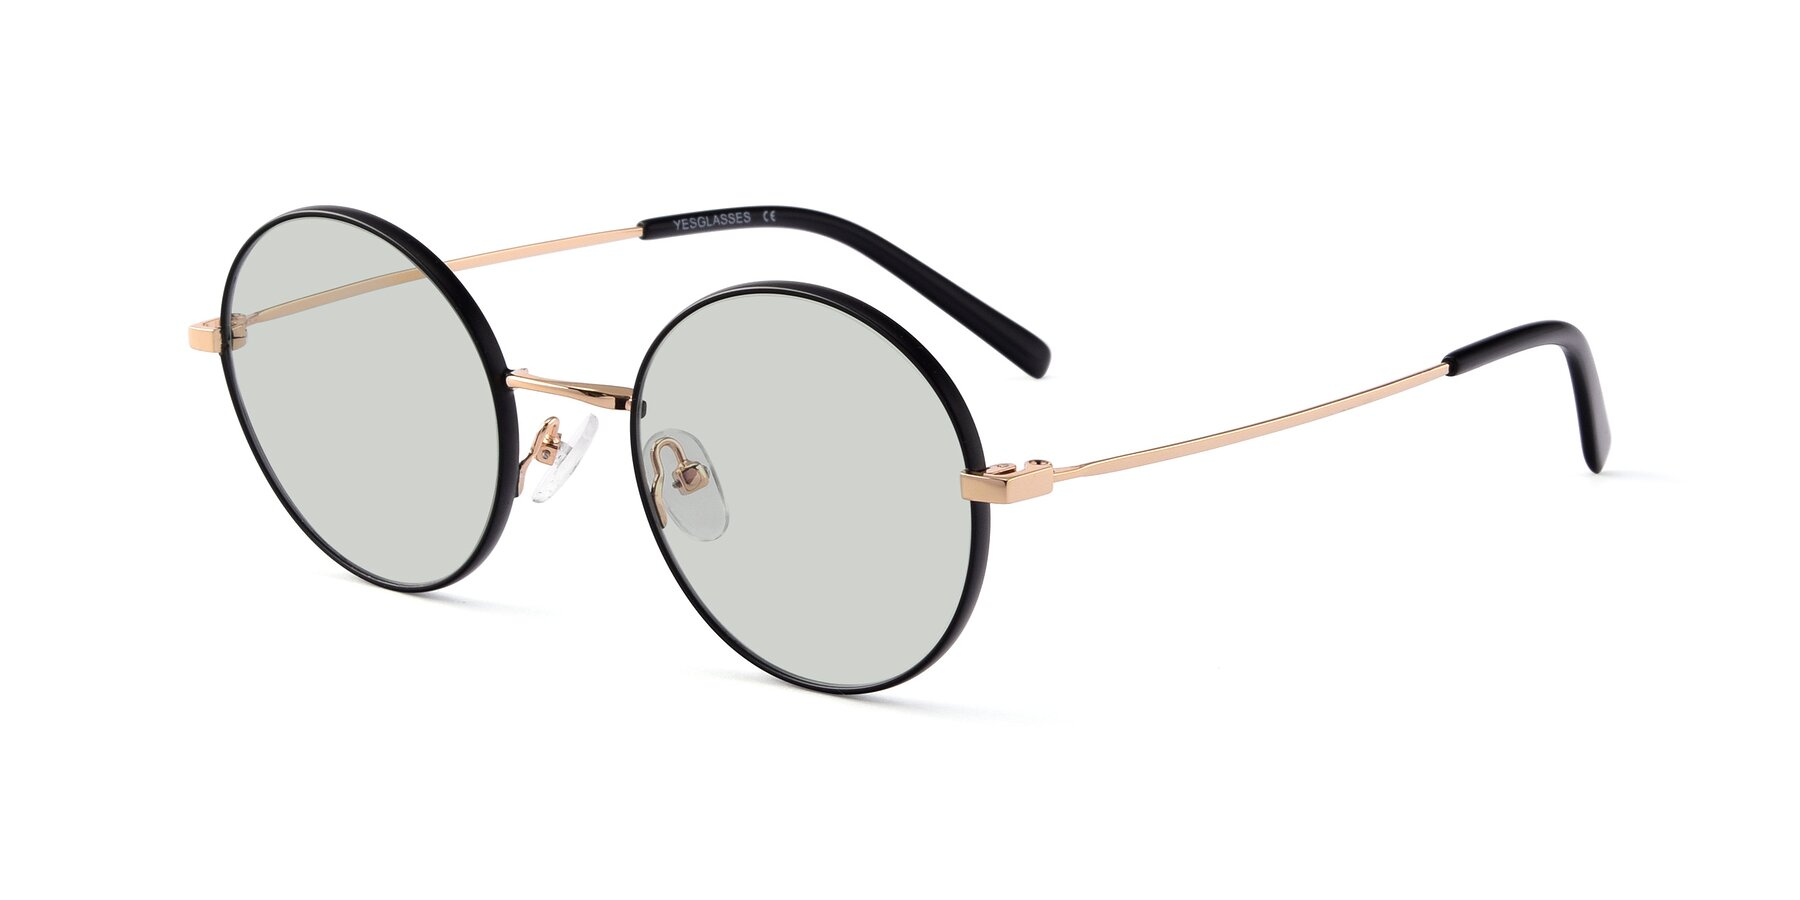 Angle of Moore in Black-Gold with Light Green Tinted Lenses